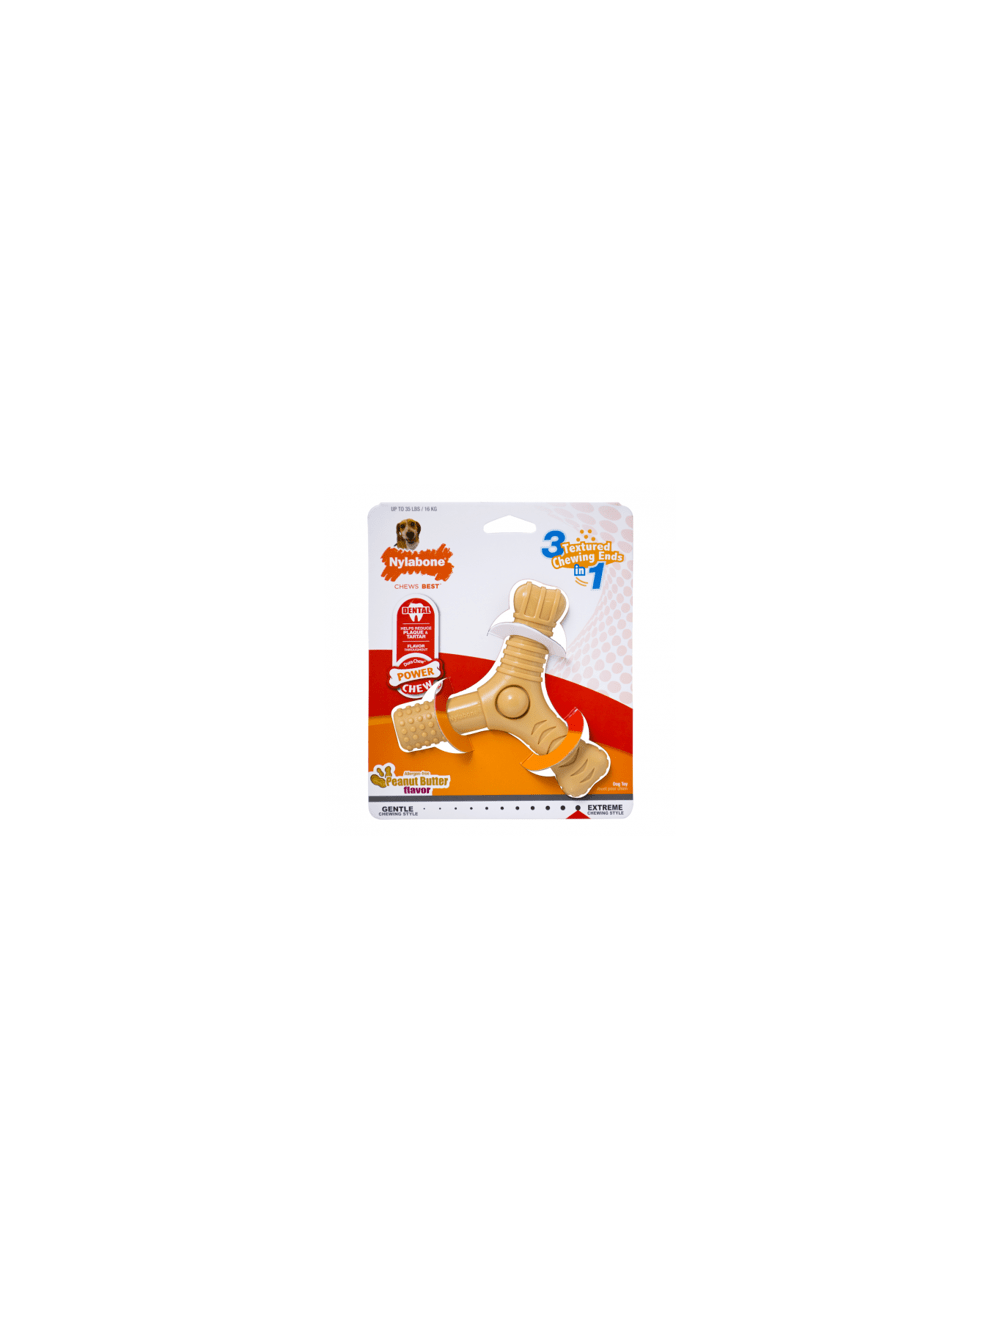 Nylabone power chew prong multitextura peanut - DESCONTINUADO